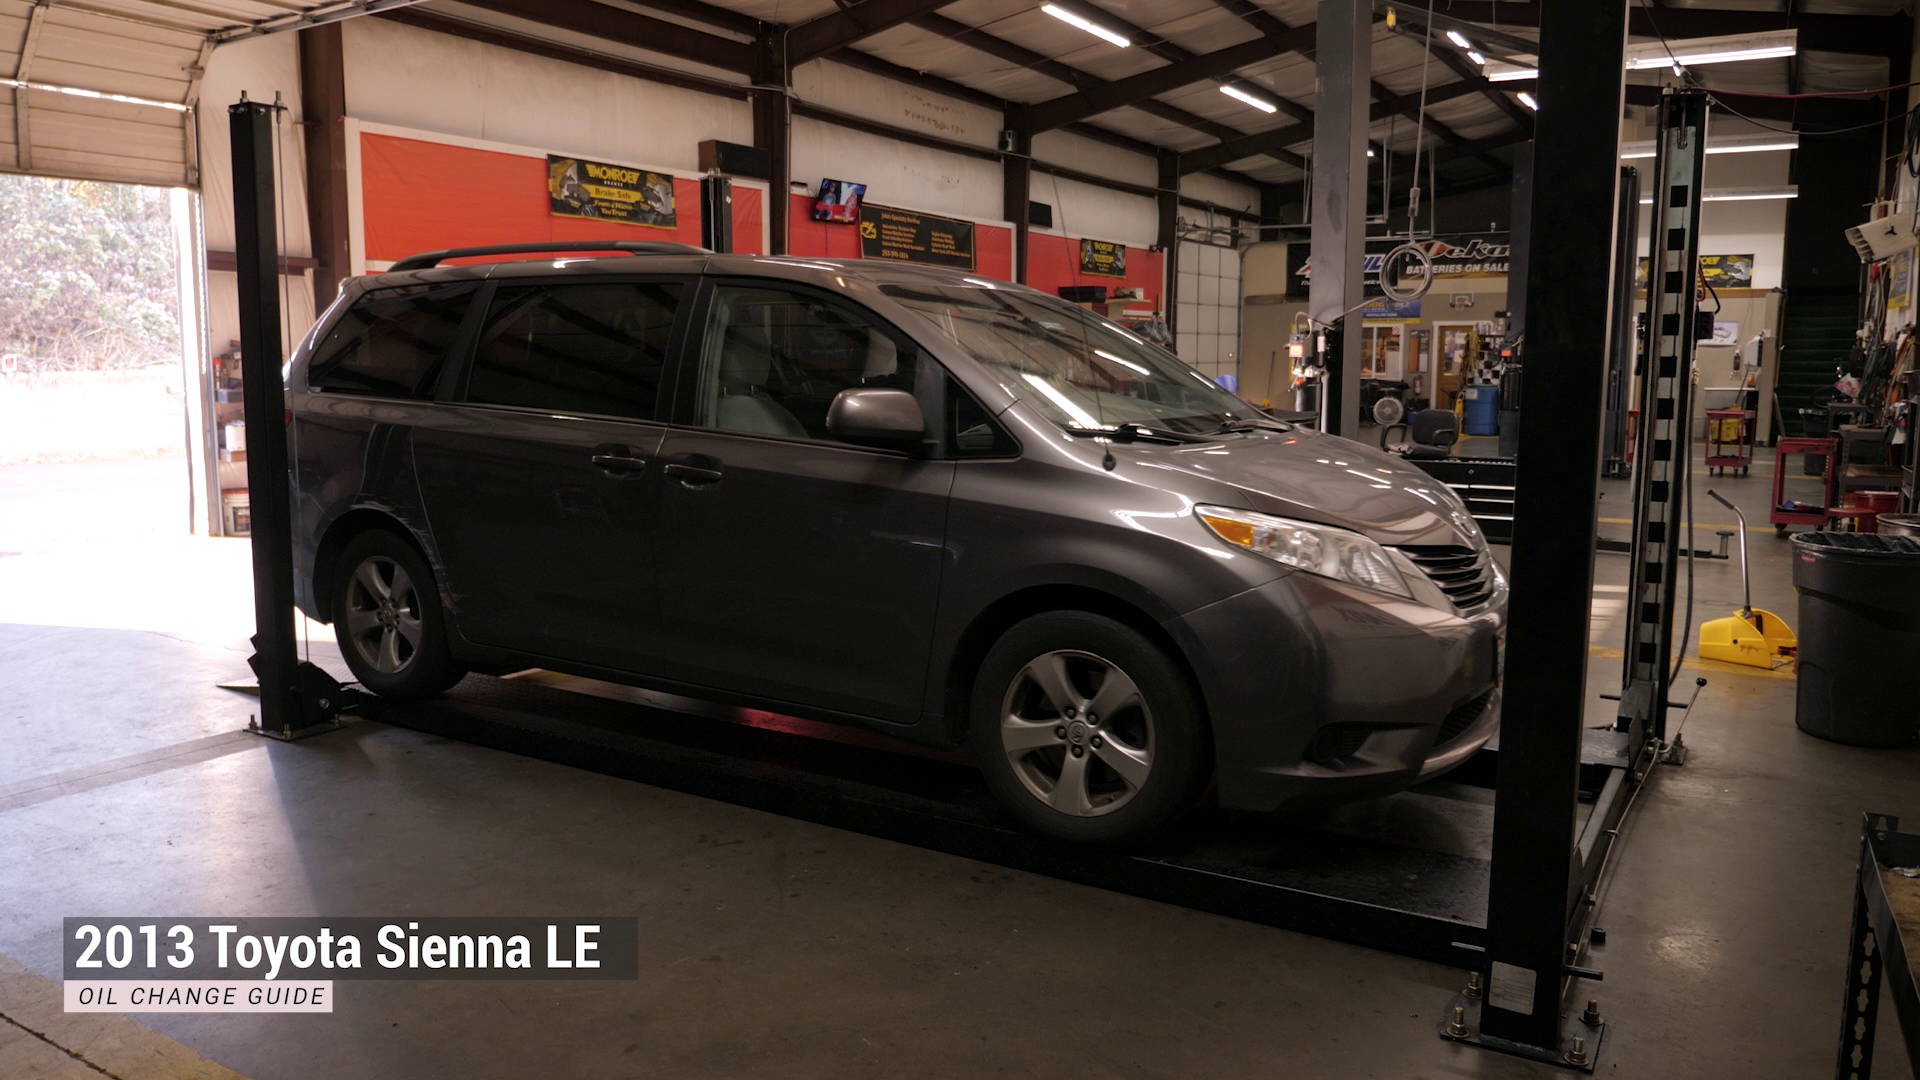 toyota sienna oil change guide motivx tools